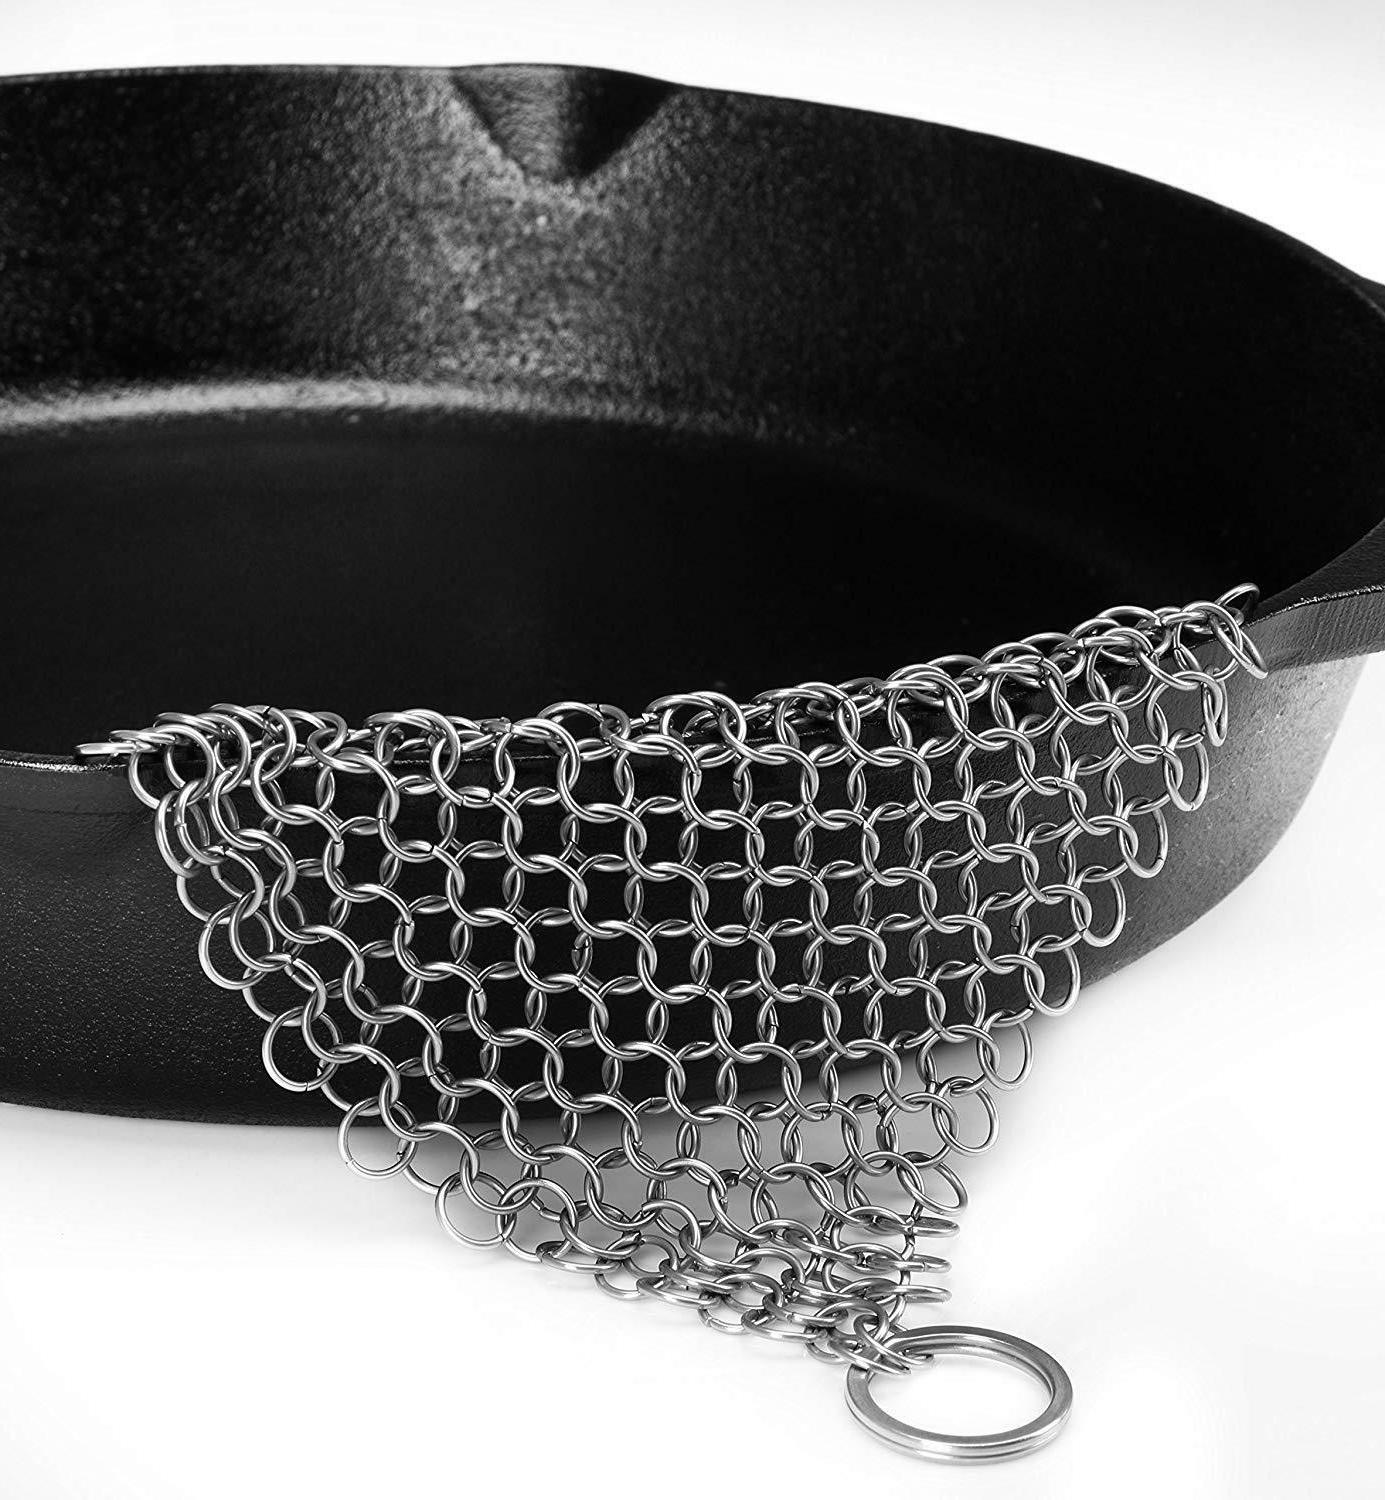 Chainmail Scrubber Stainless Steel Cast Utopia